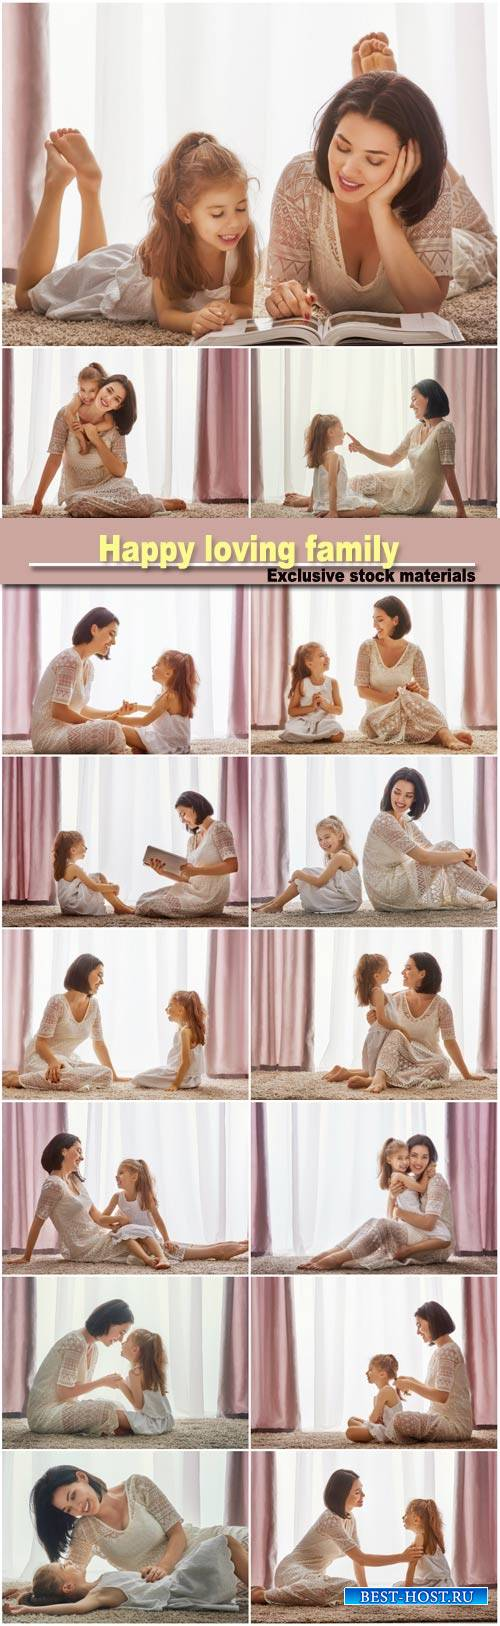 Happy loving family, mother and her daughter child girl playing and hugging